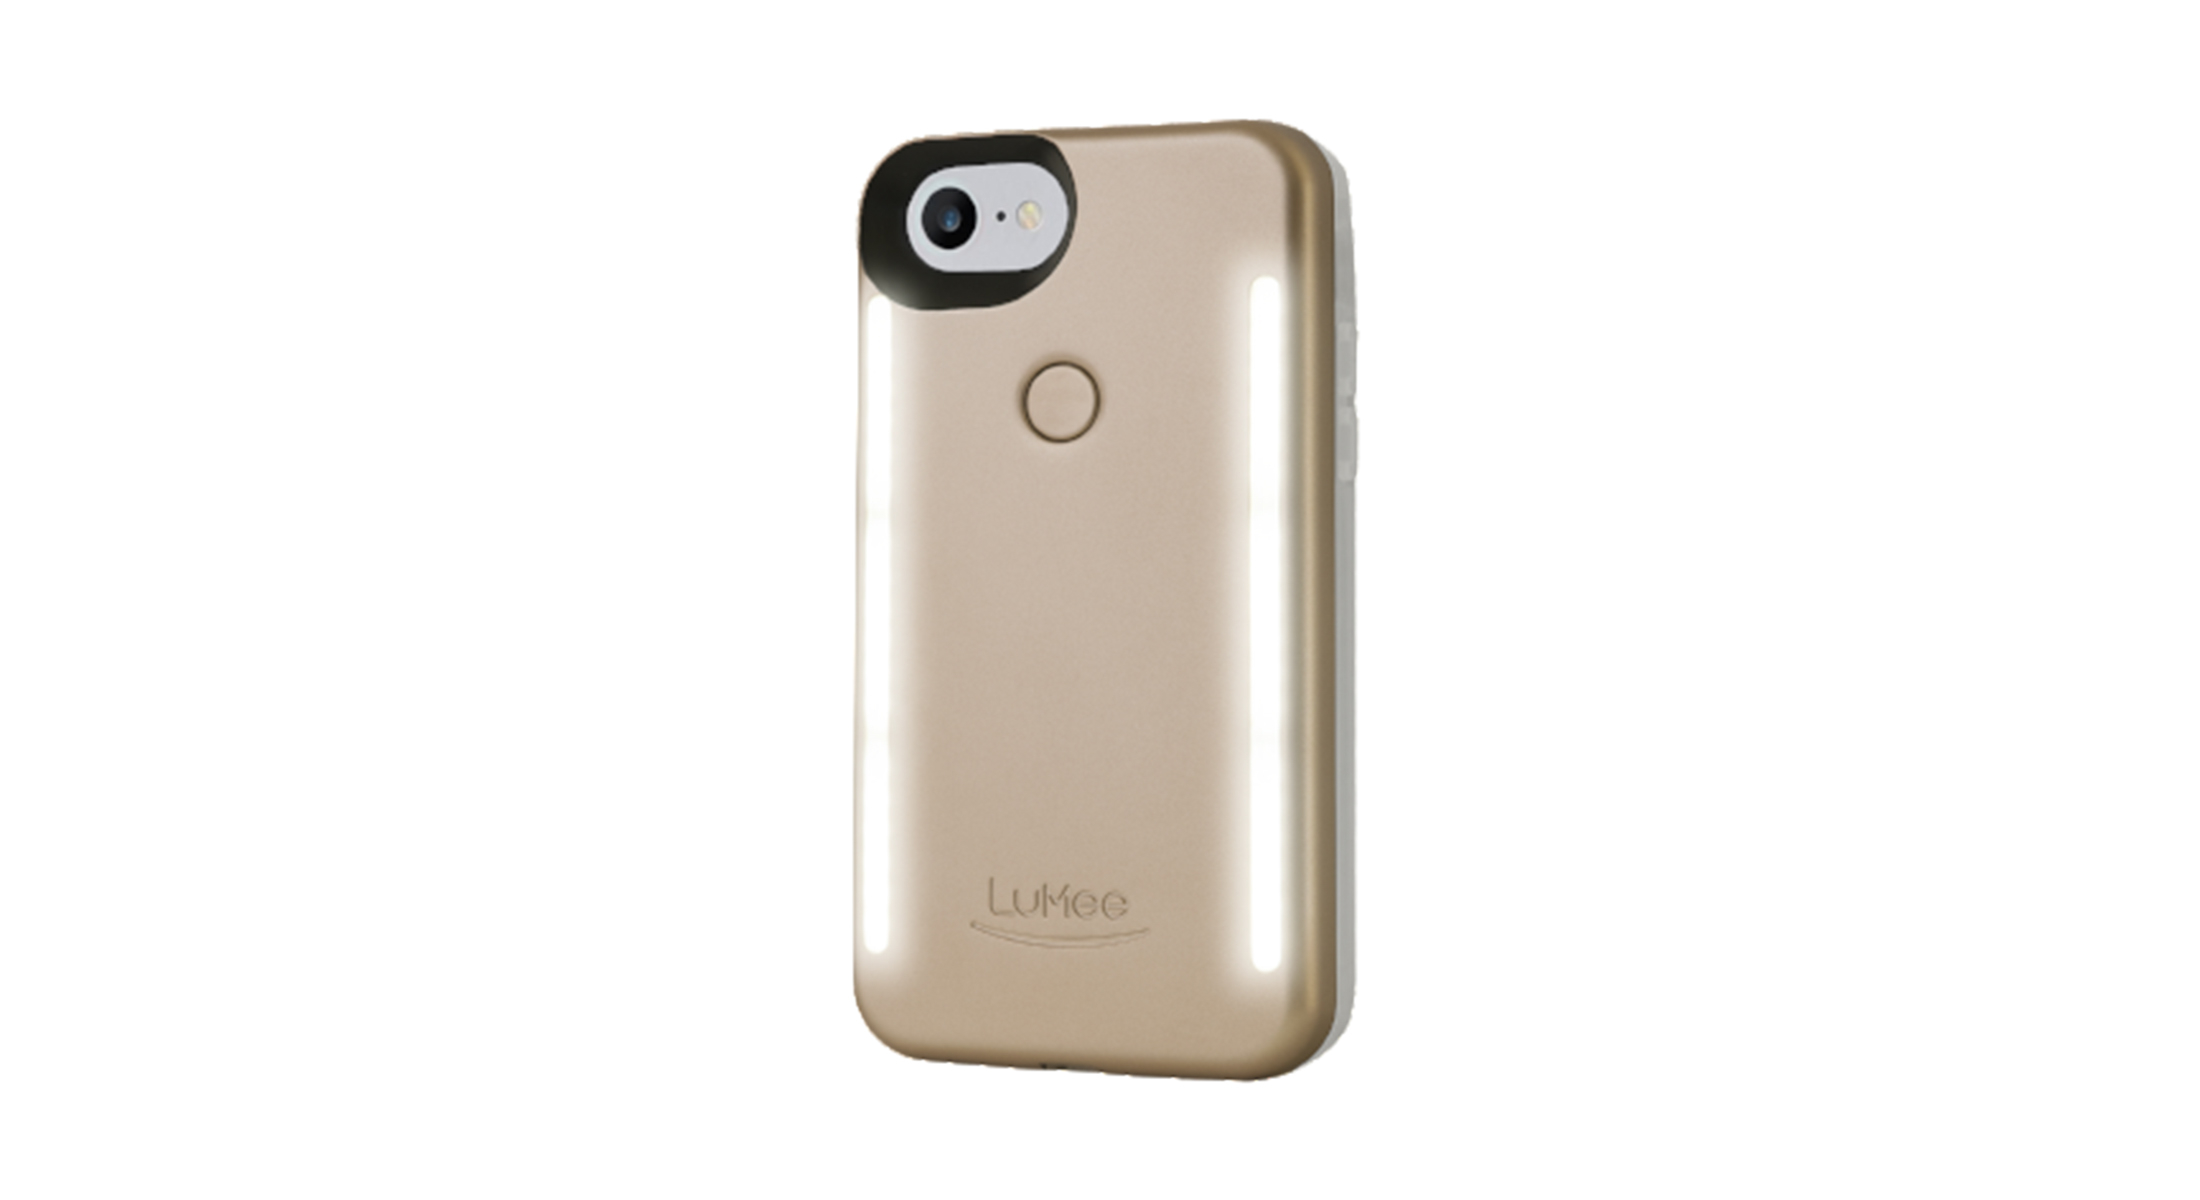 LuMee-phone-case-lights-Gold-copy.JPG?mtime=20180703150023#asset:102329